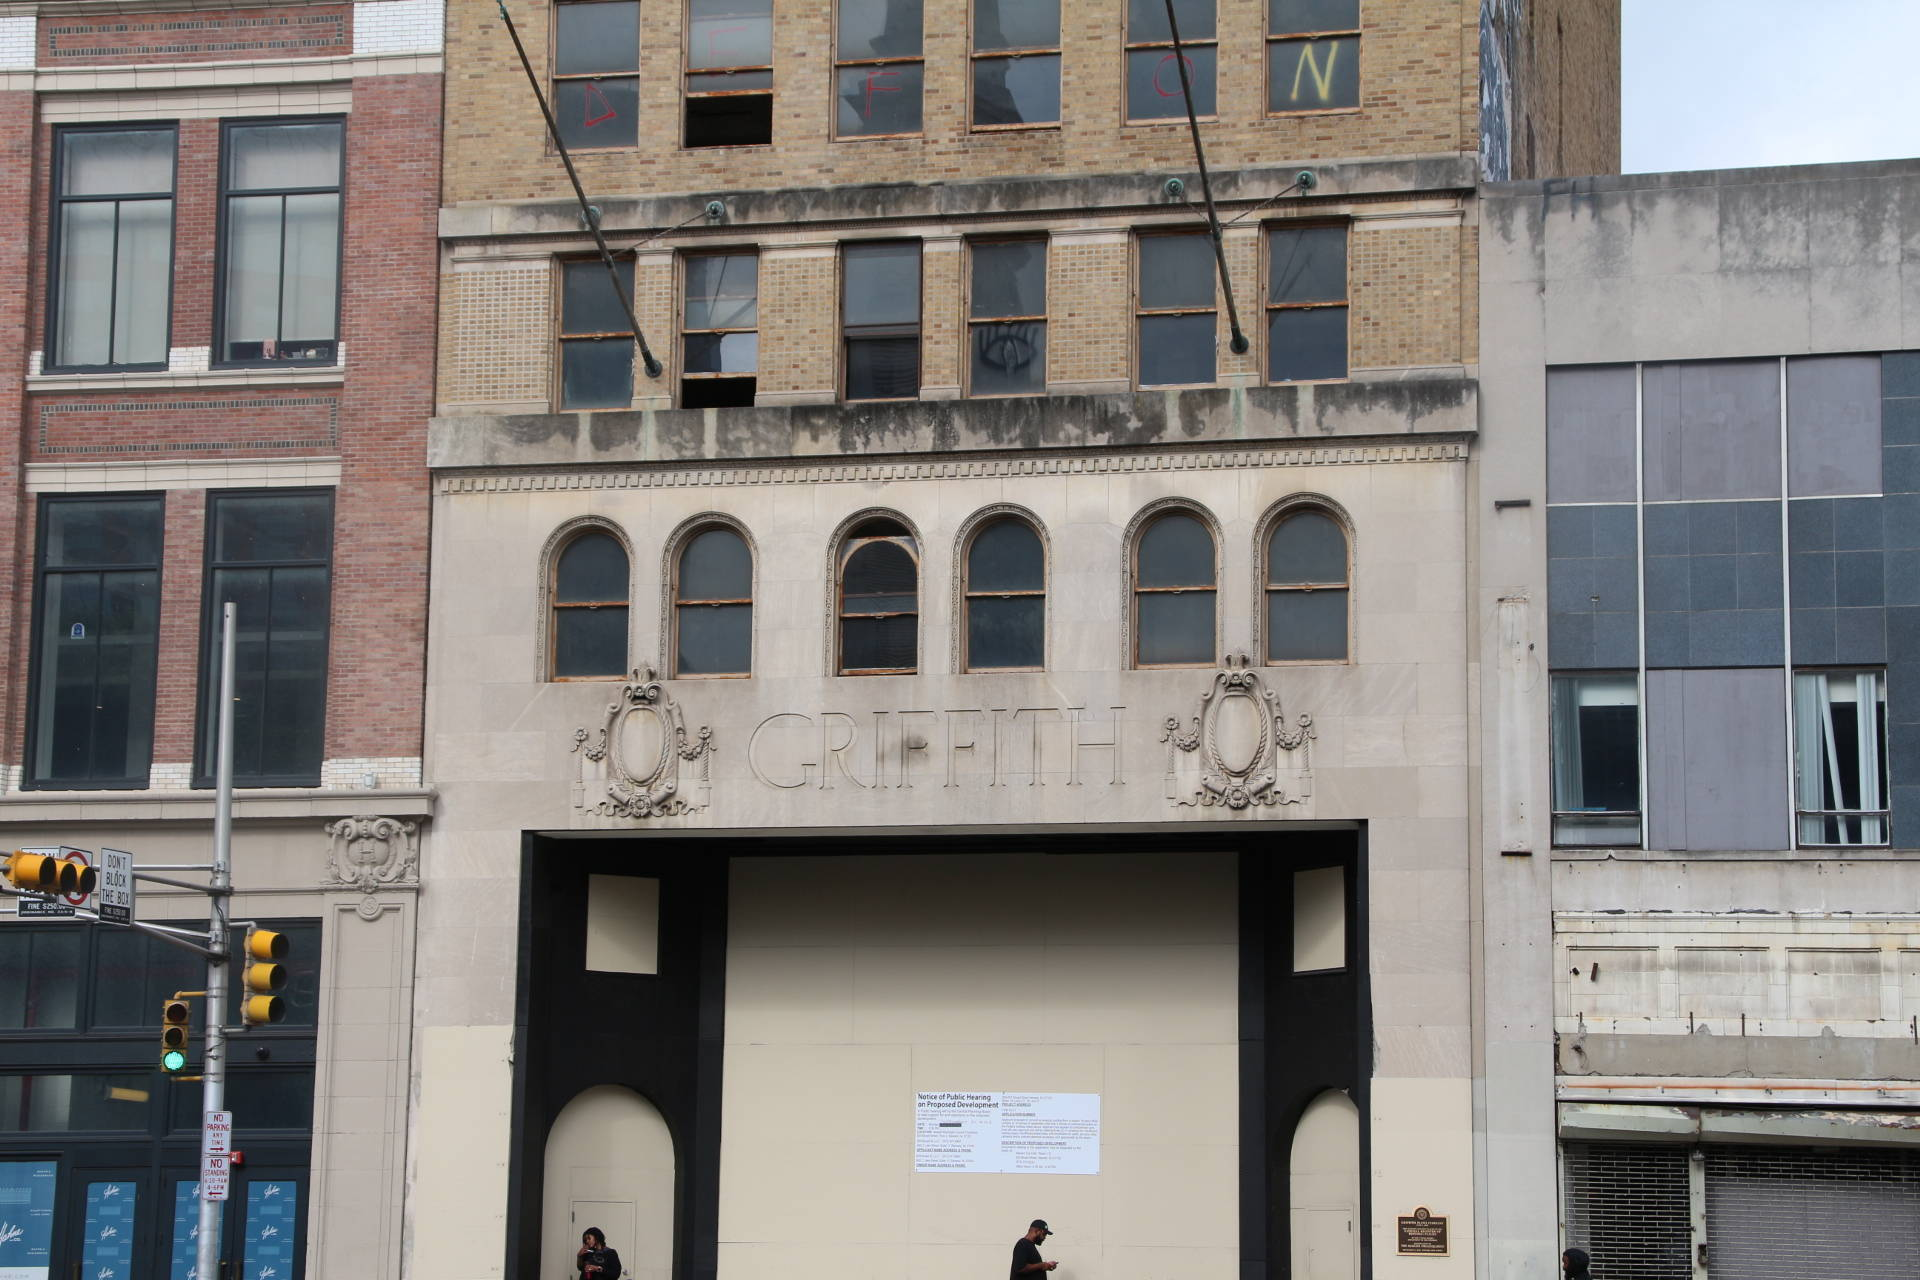 Mystery Developer Gets OK to Turn Historic Griffith Building Into Apartments